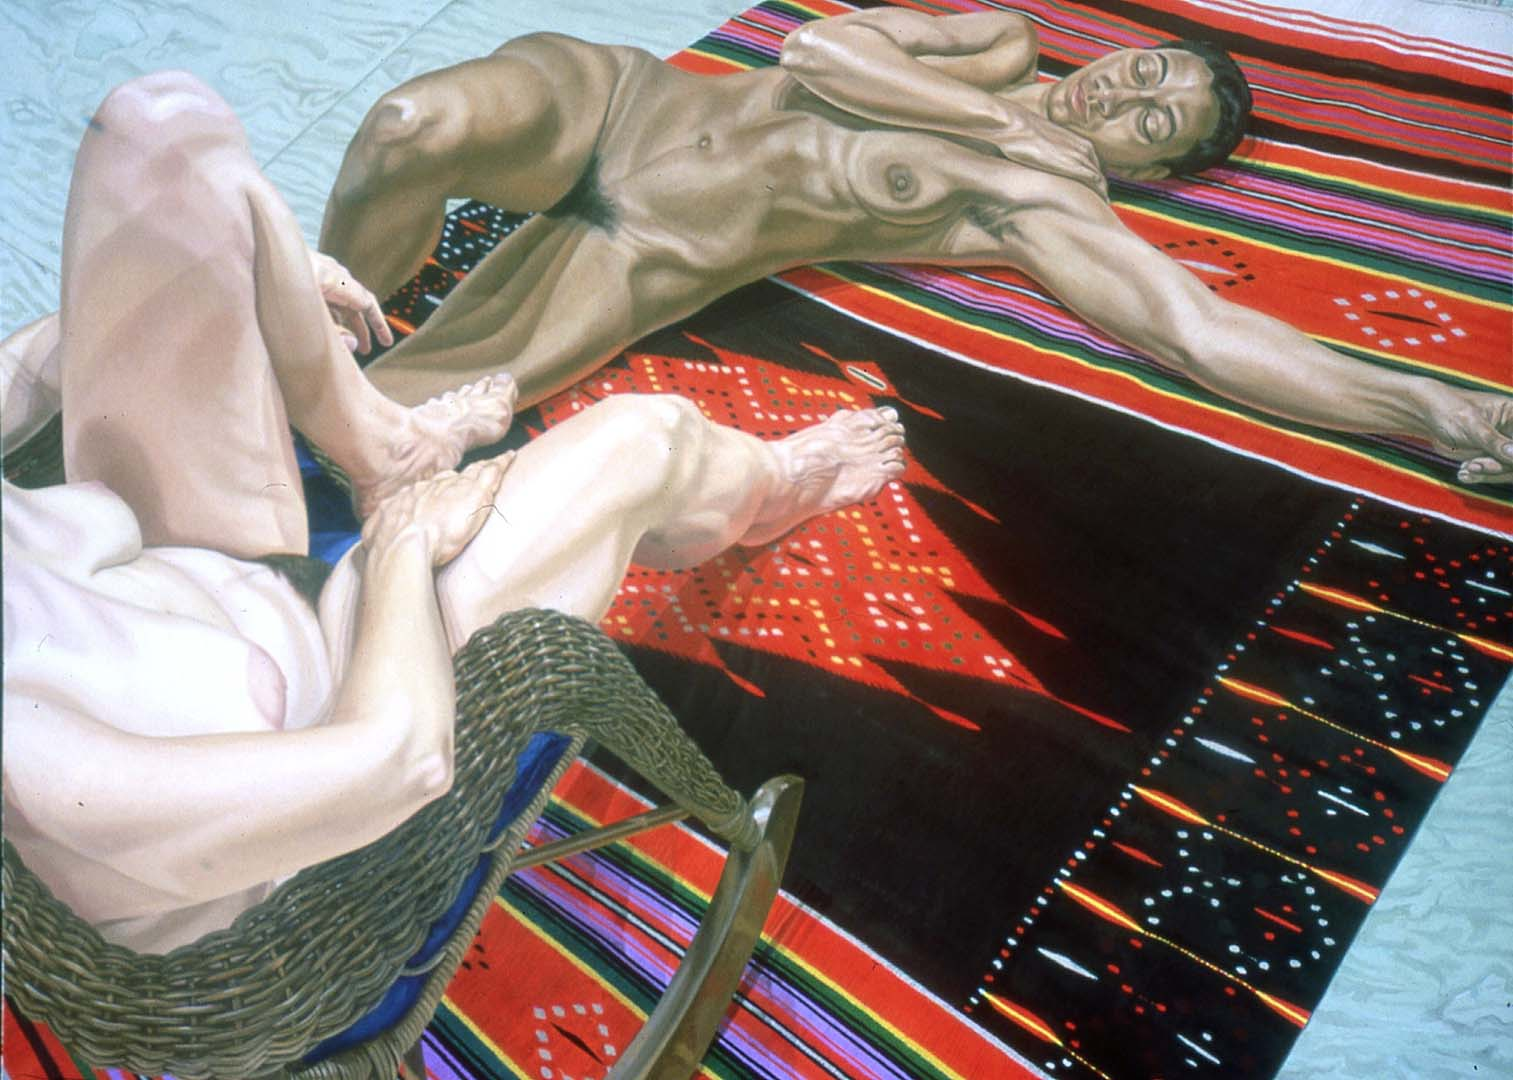 1983 Two Models with Wicker Rocker and Mexican Blanket Oil on Canvas 72 x 96